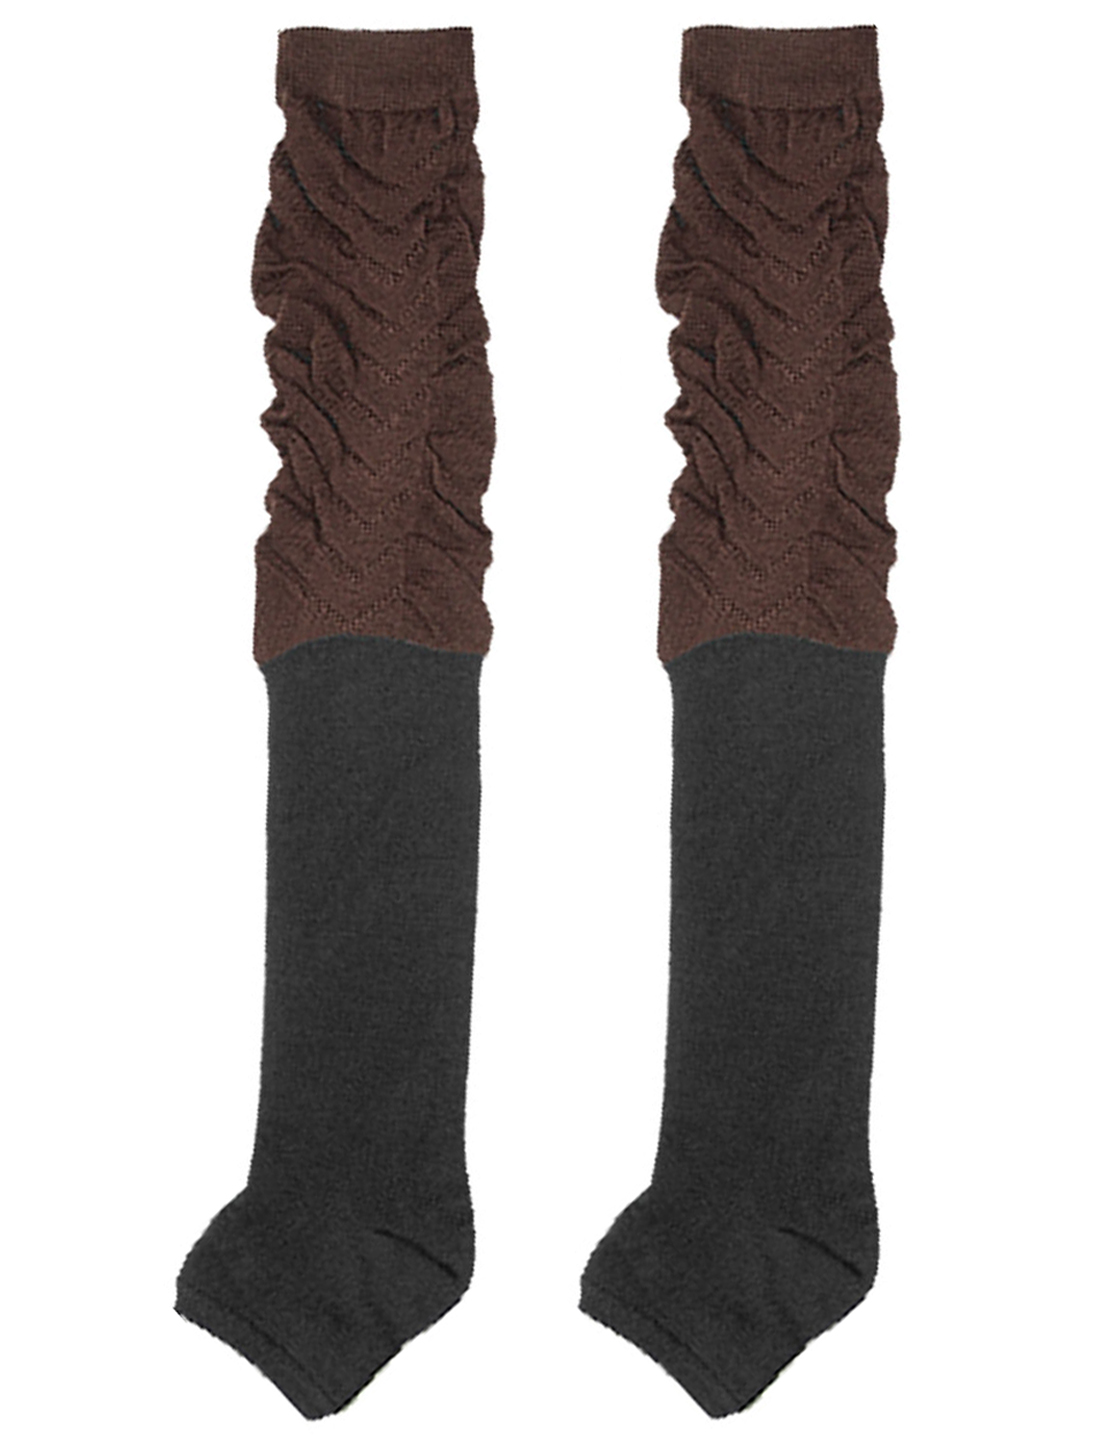 Thick Soft Black Brown Warm Flower Socks Stockings